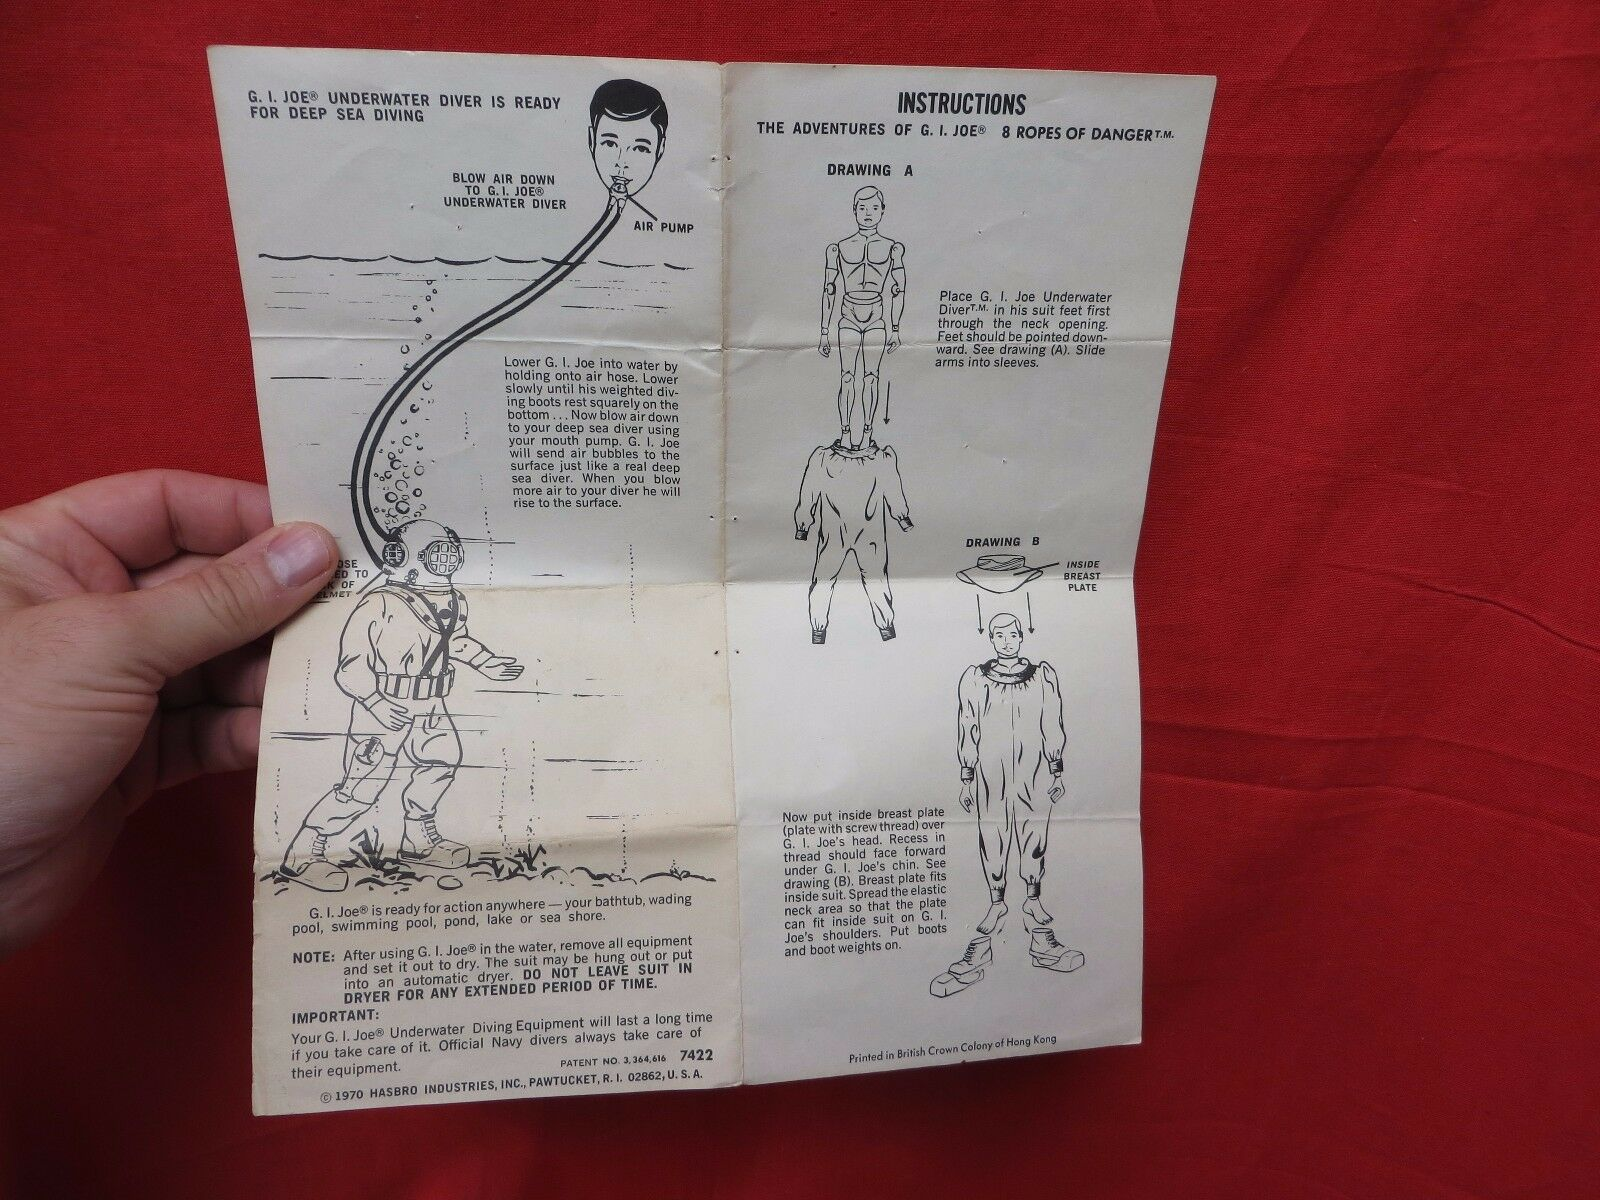 1964 VINTAGE GI JOE JOEZETA    1970 8 ROPES OF DANGER INSTRUCTIONS